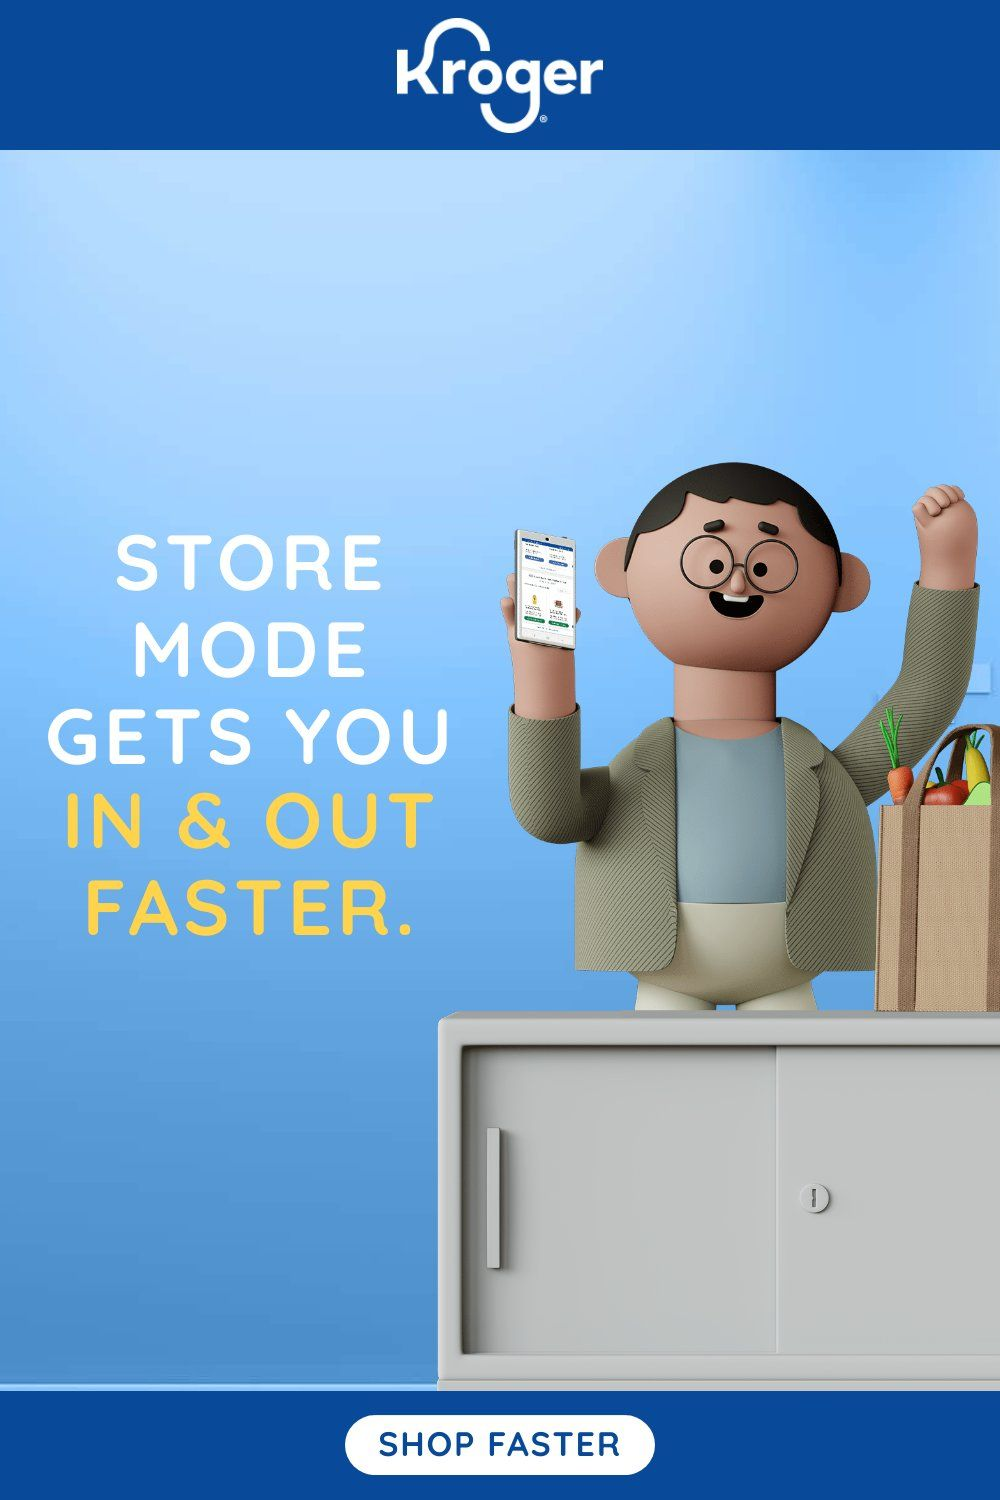 In-Store Mode Gets You In & Out Faster.